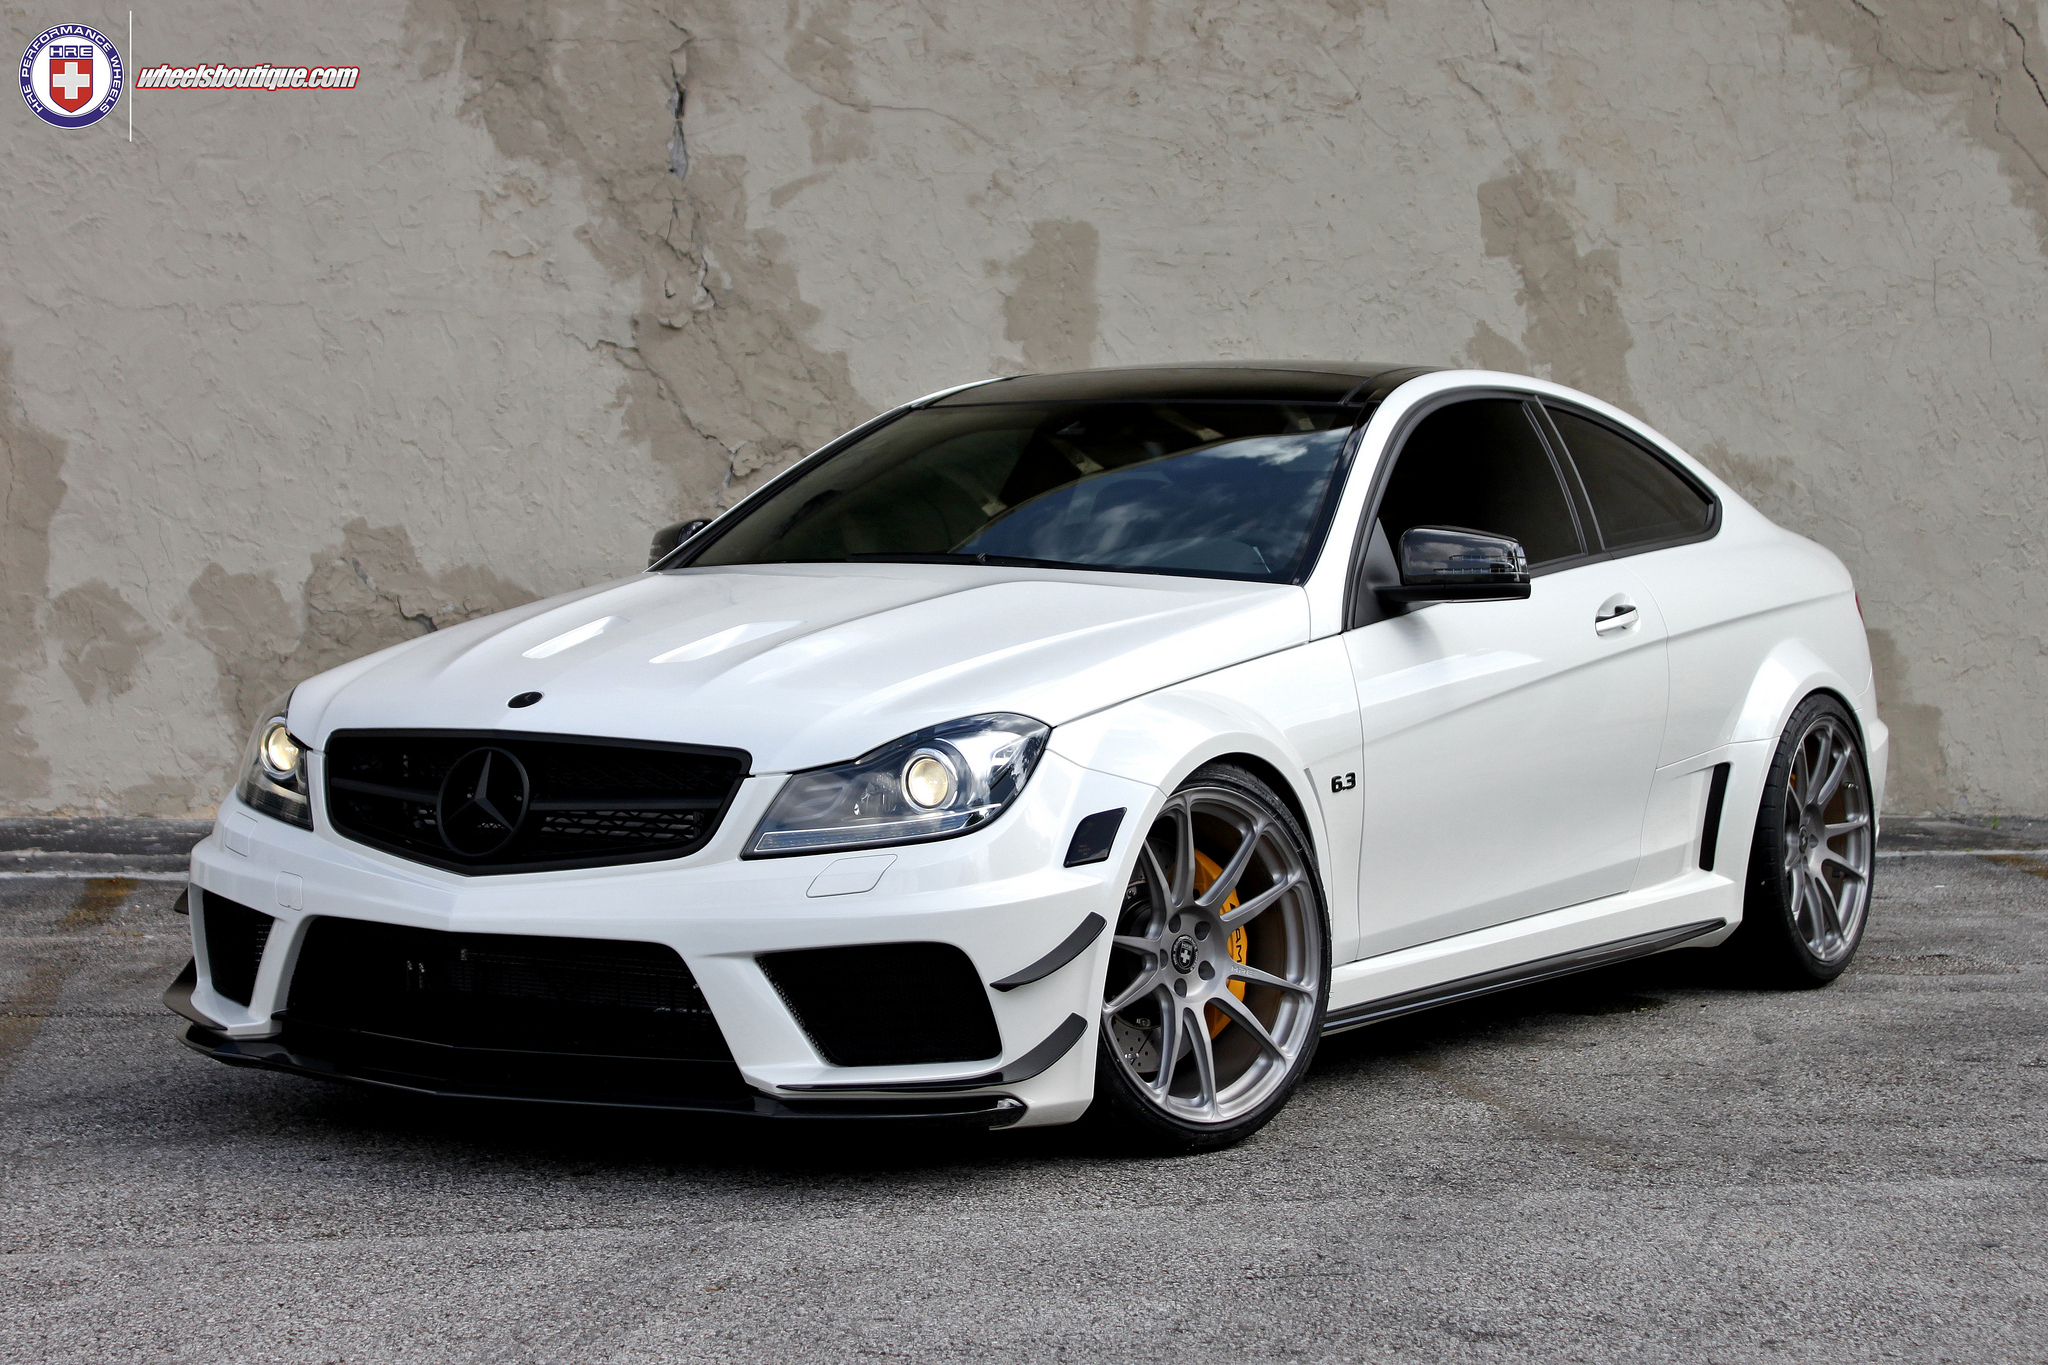 Mercedes Tuning Wheels Boutique Amp Hre Tweaked C63 Amg Black